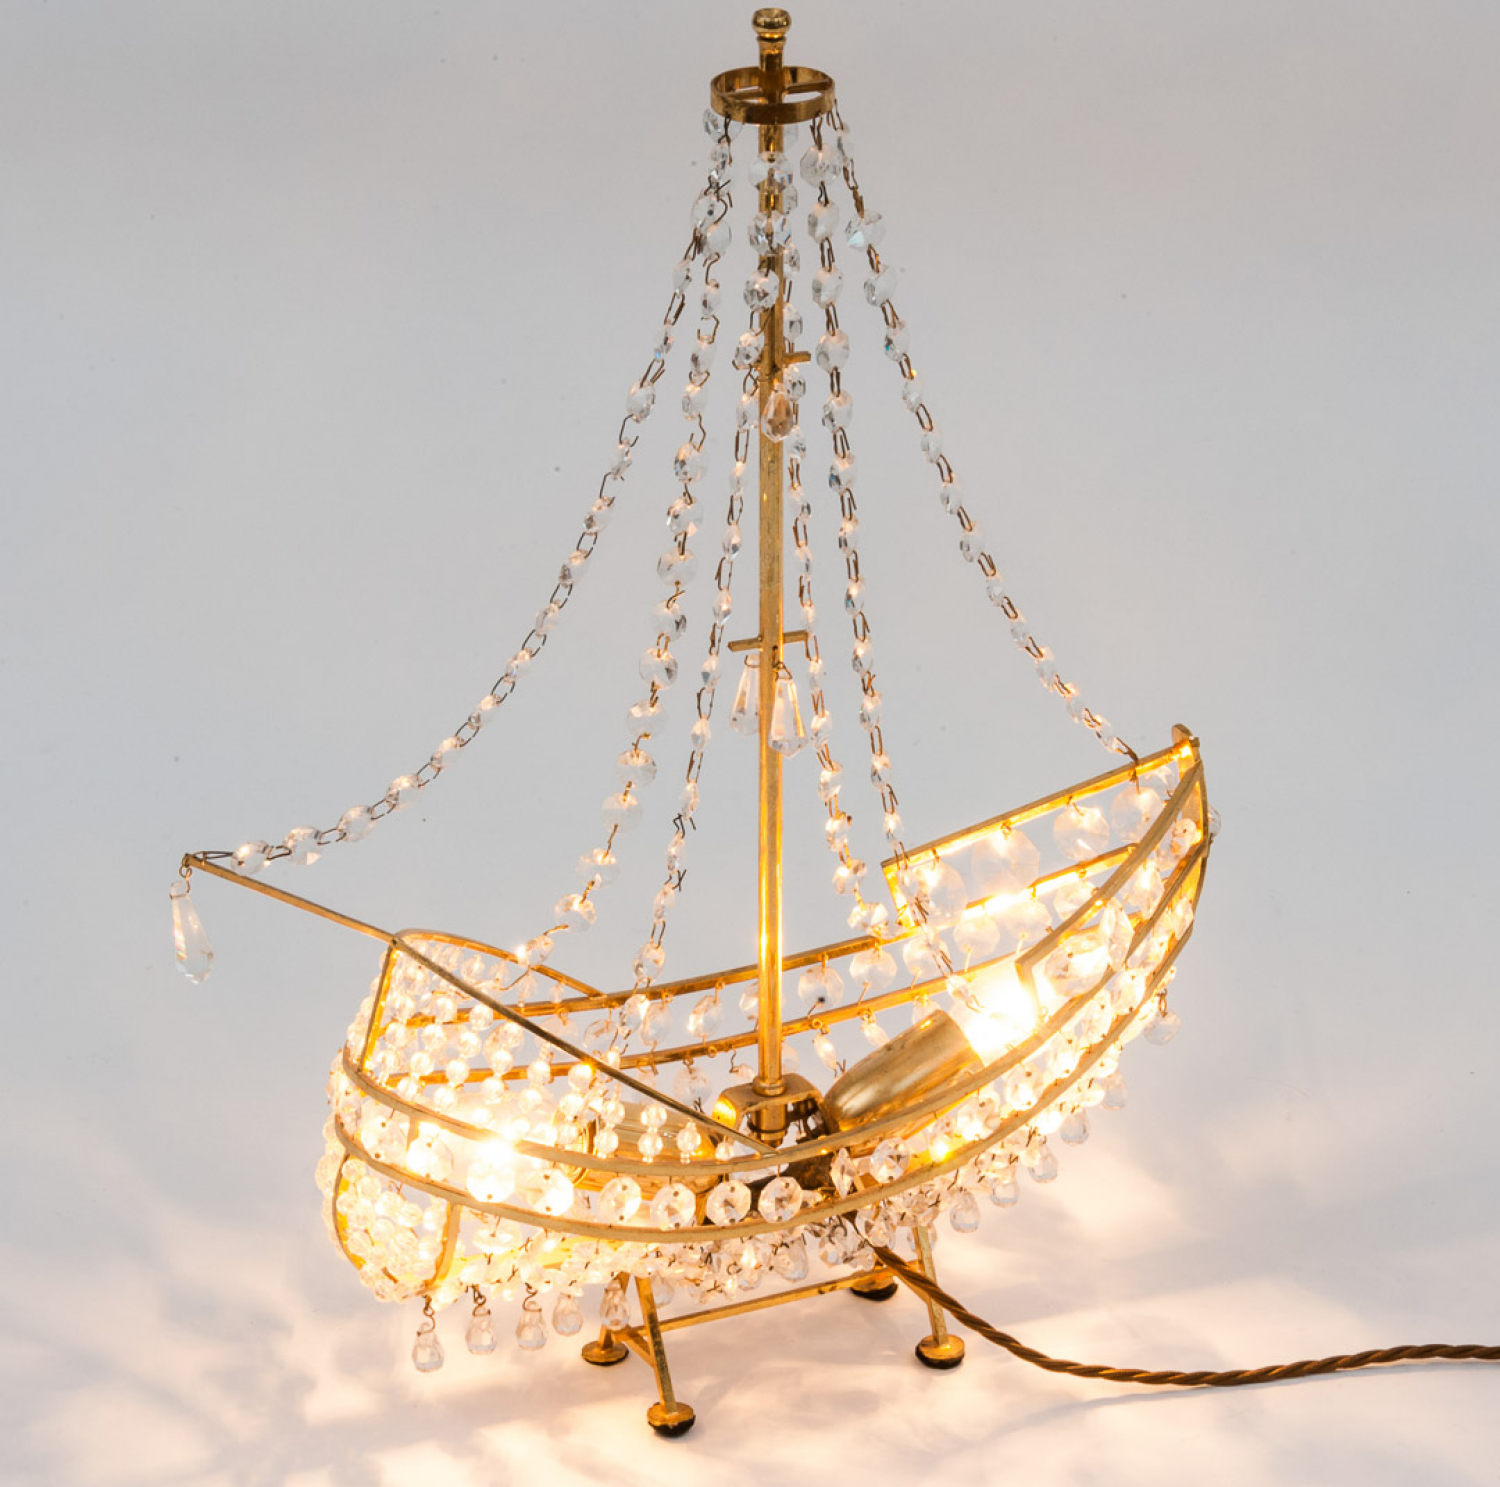 Brass and glass ship lamp